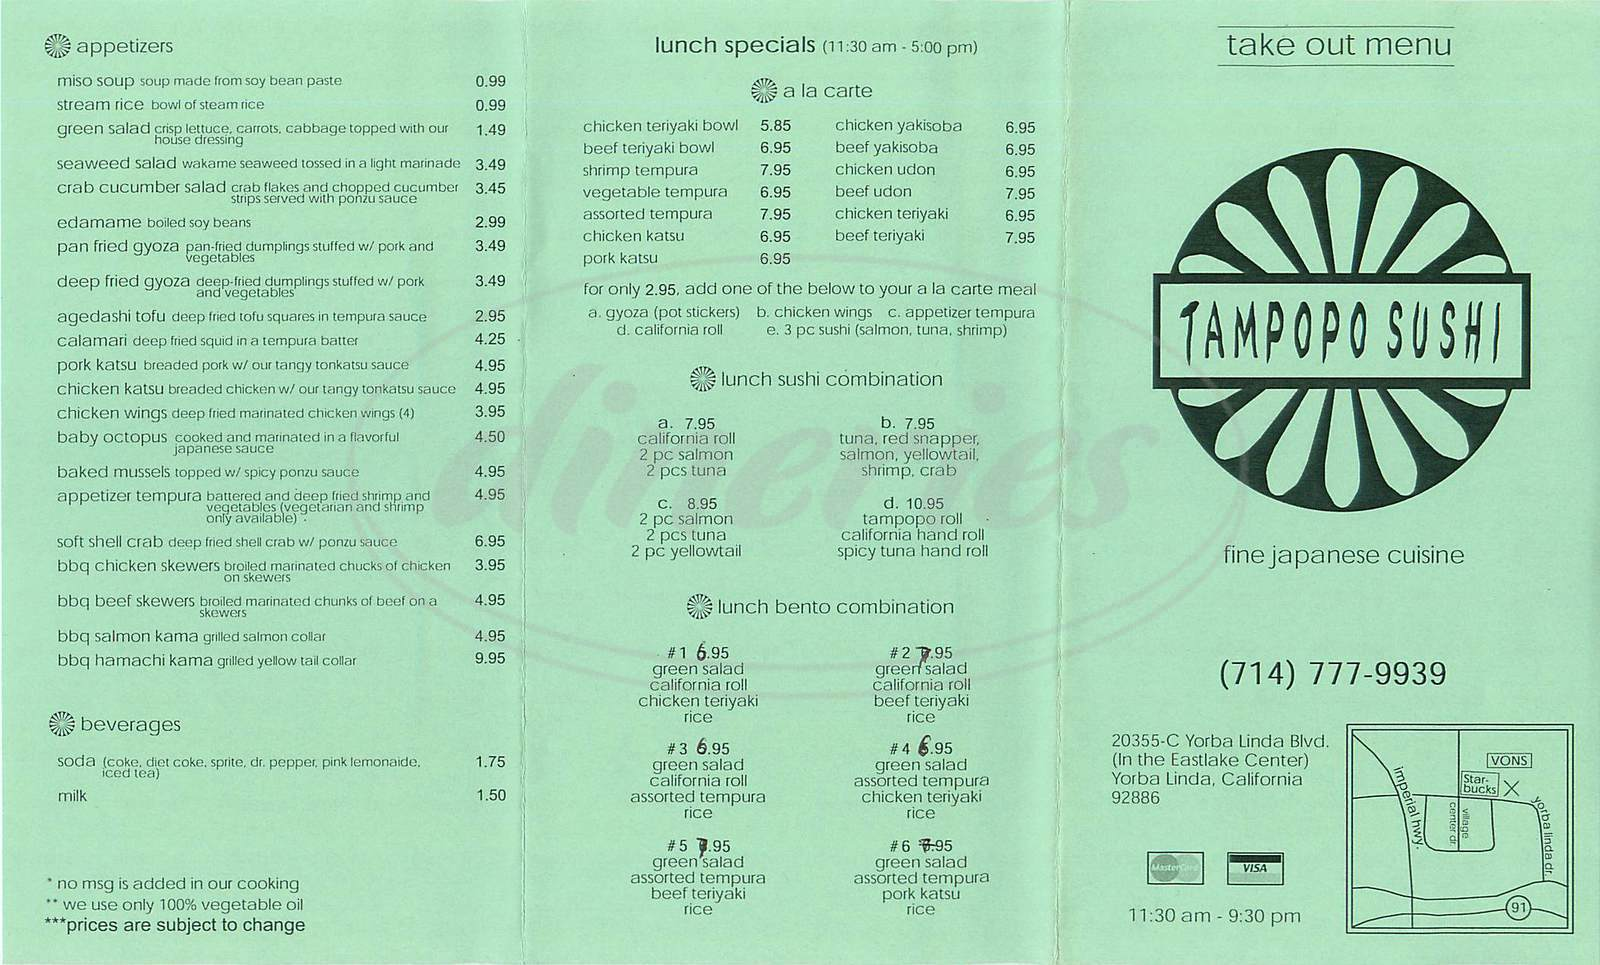 menu for Tampopo Sushi